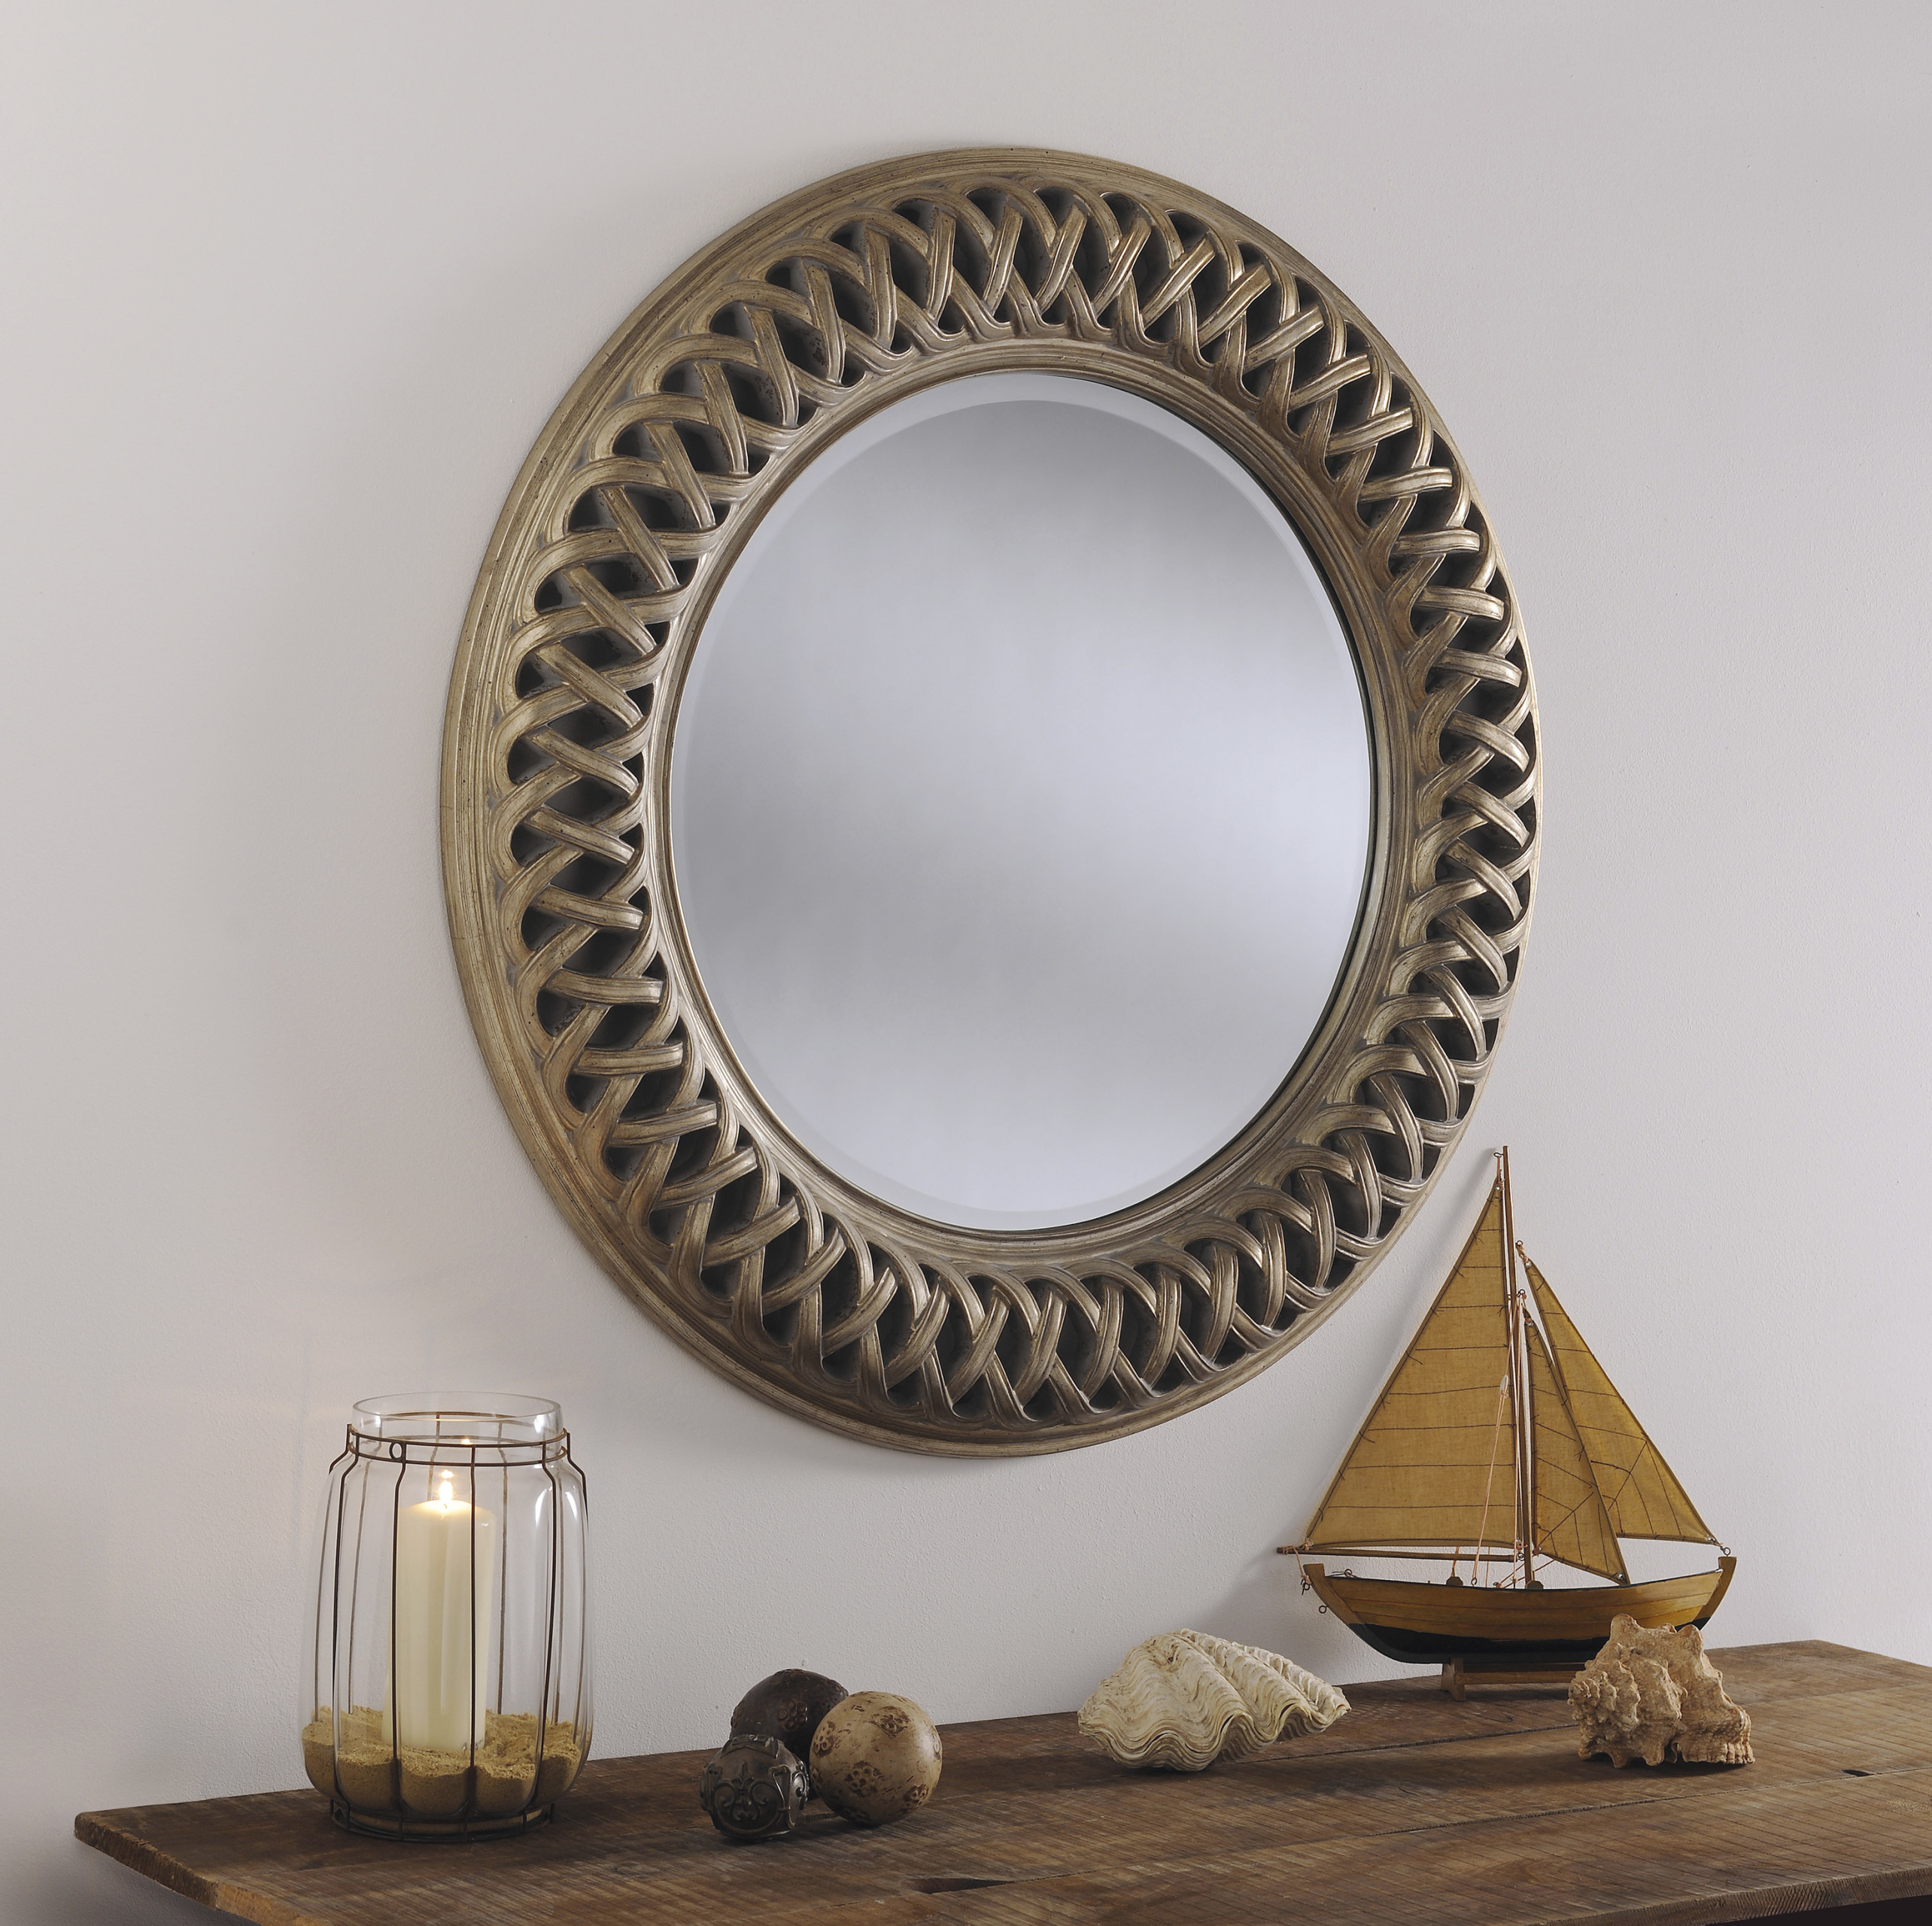 Ov24 Ivory Celtic Designe Large Round Wall Mirror Living